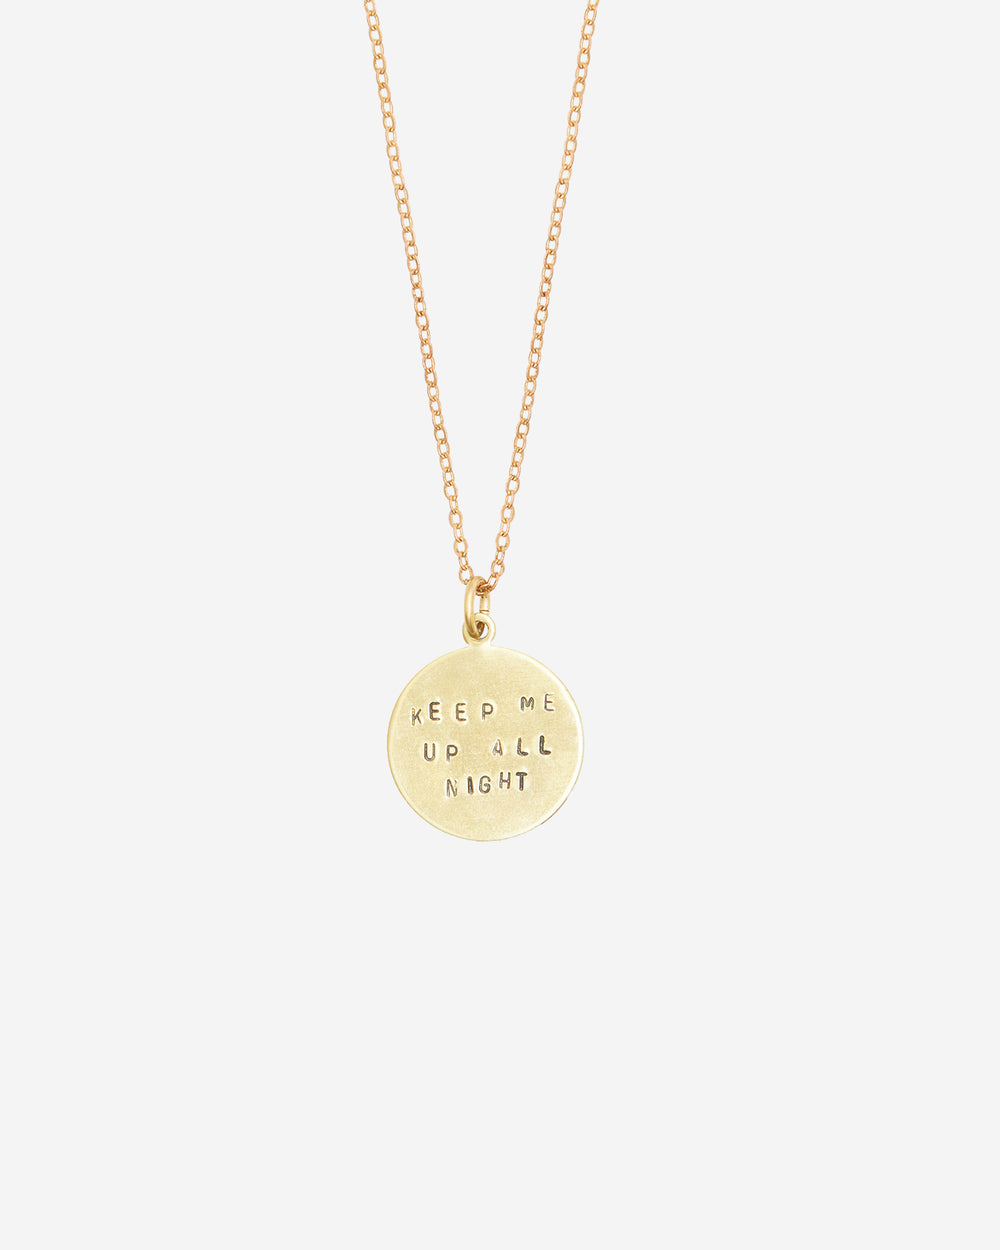 Keep Me Up All Night Hand-Stamped Necklace